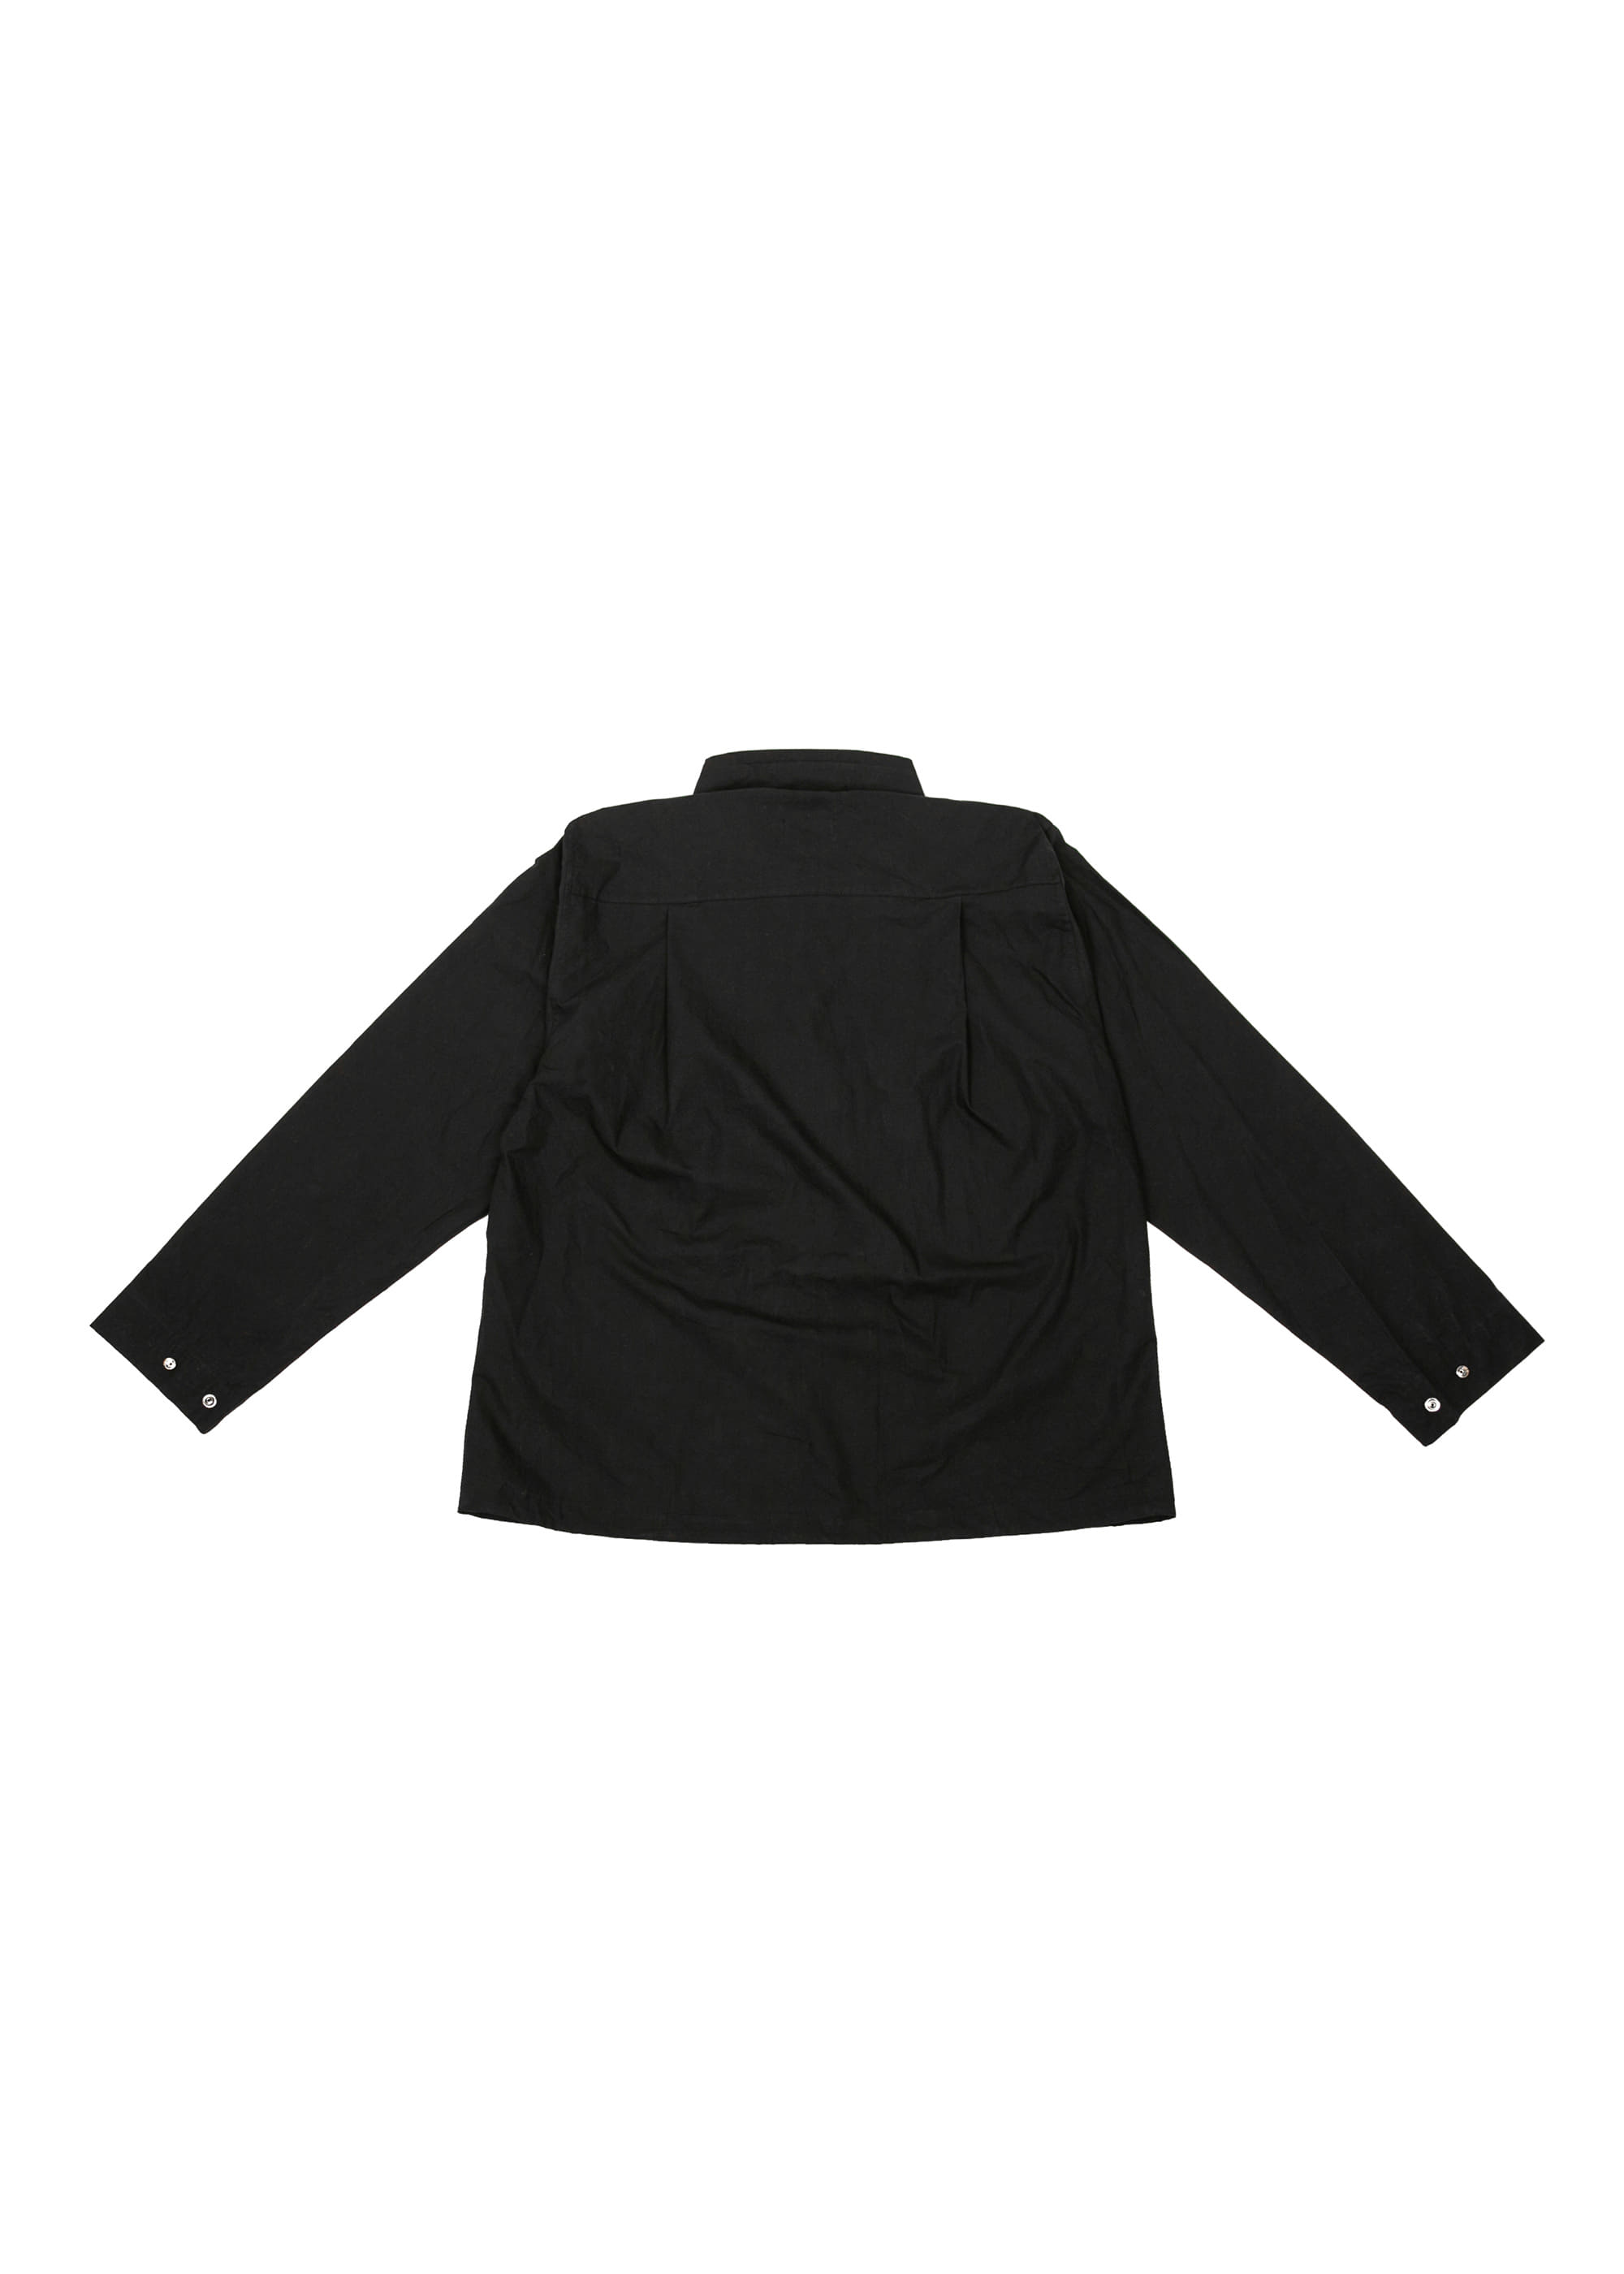 Neck String Shirts Jacket - Black